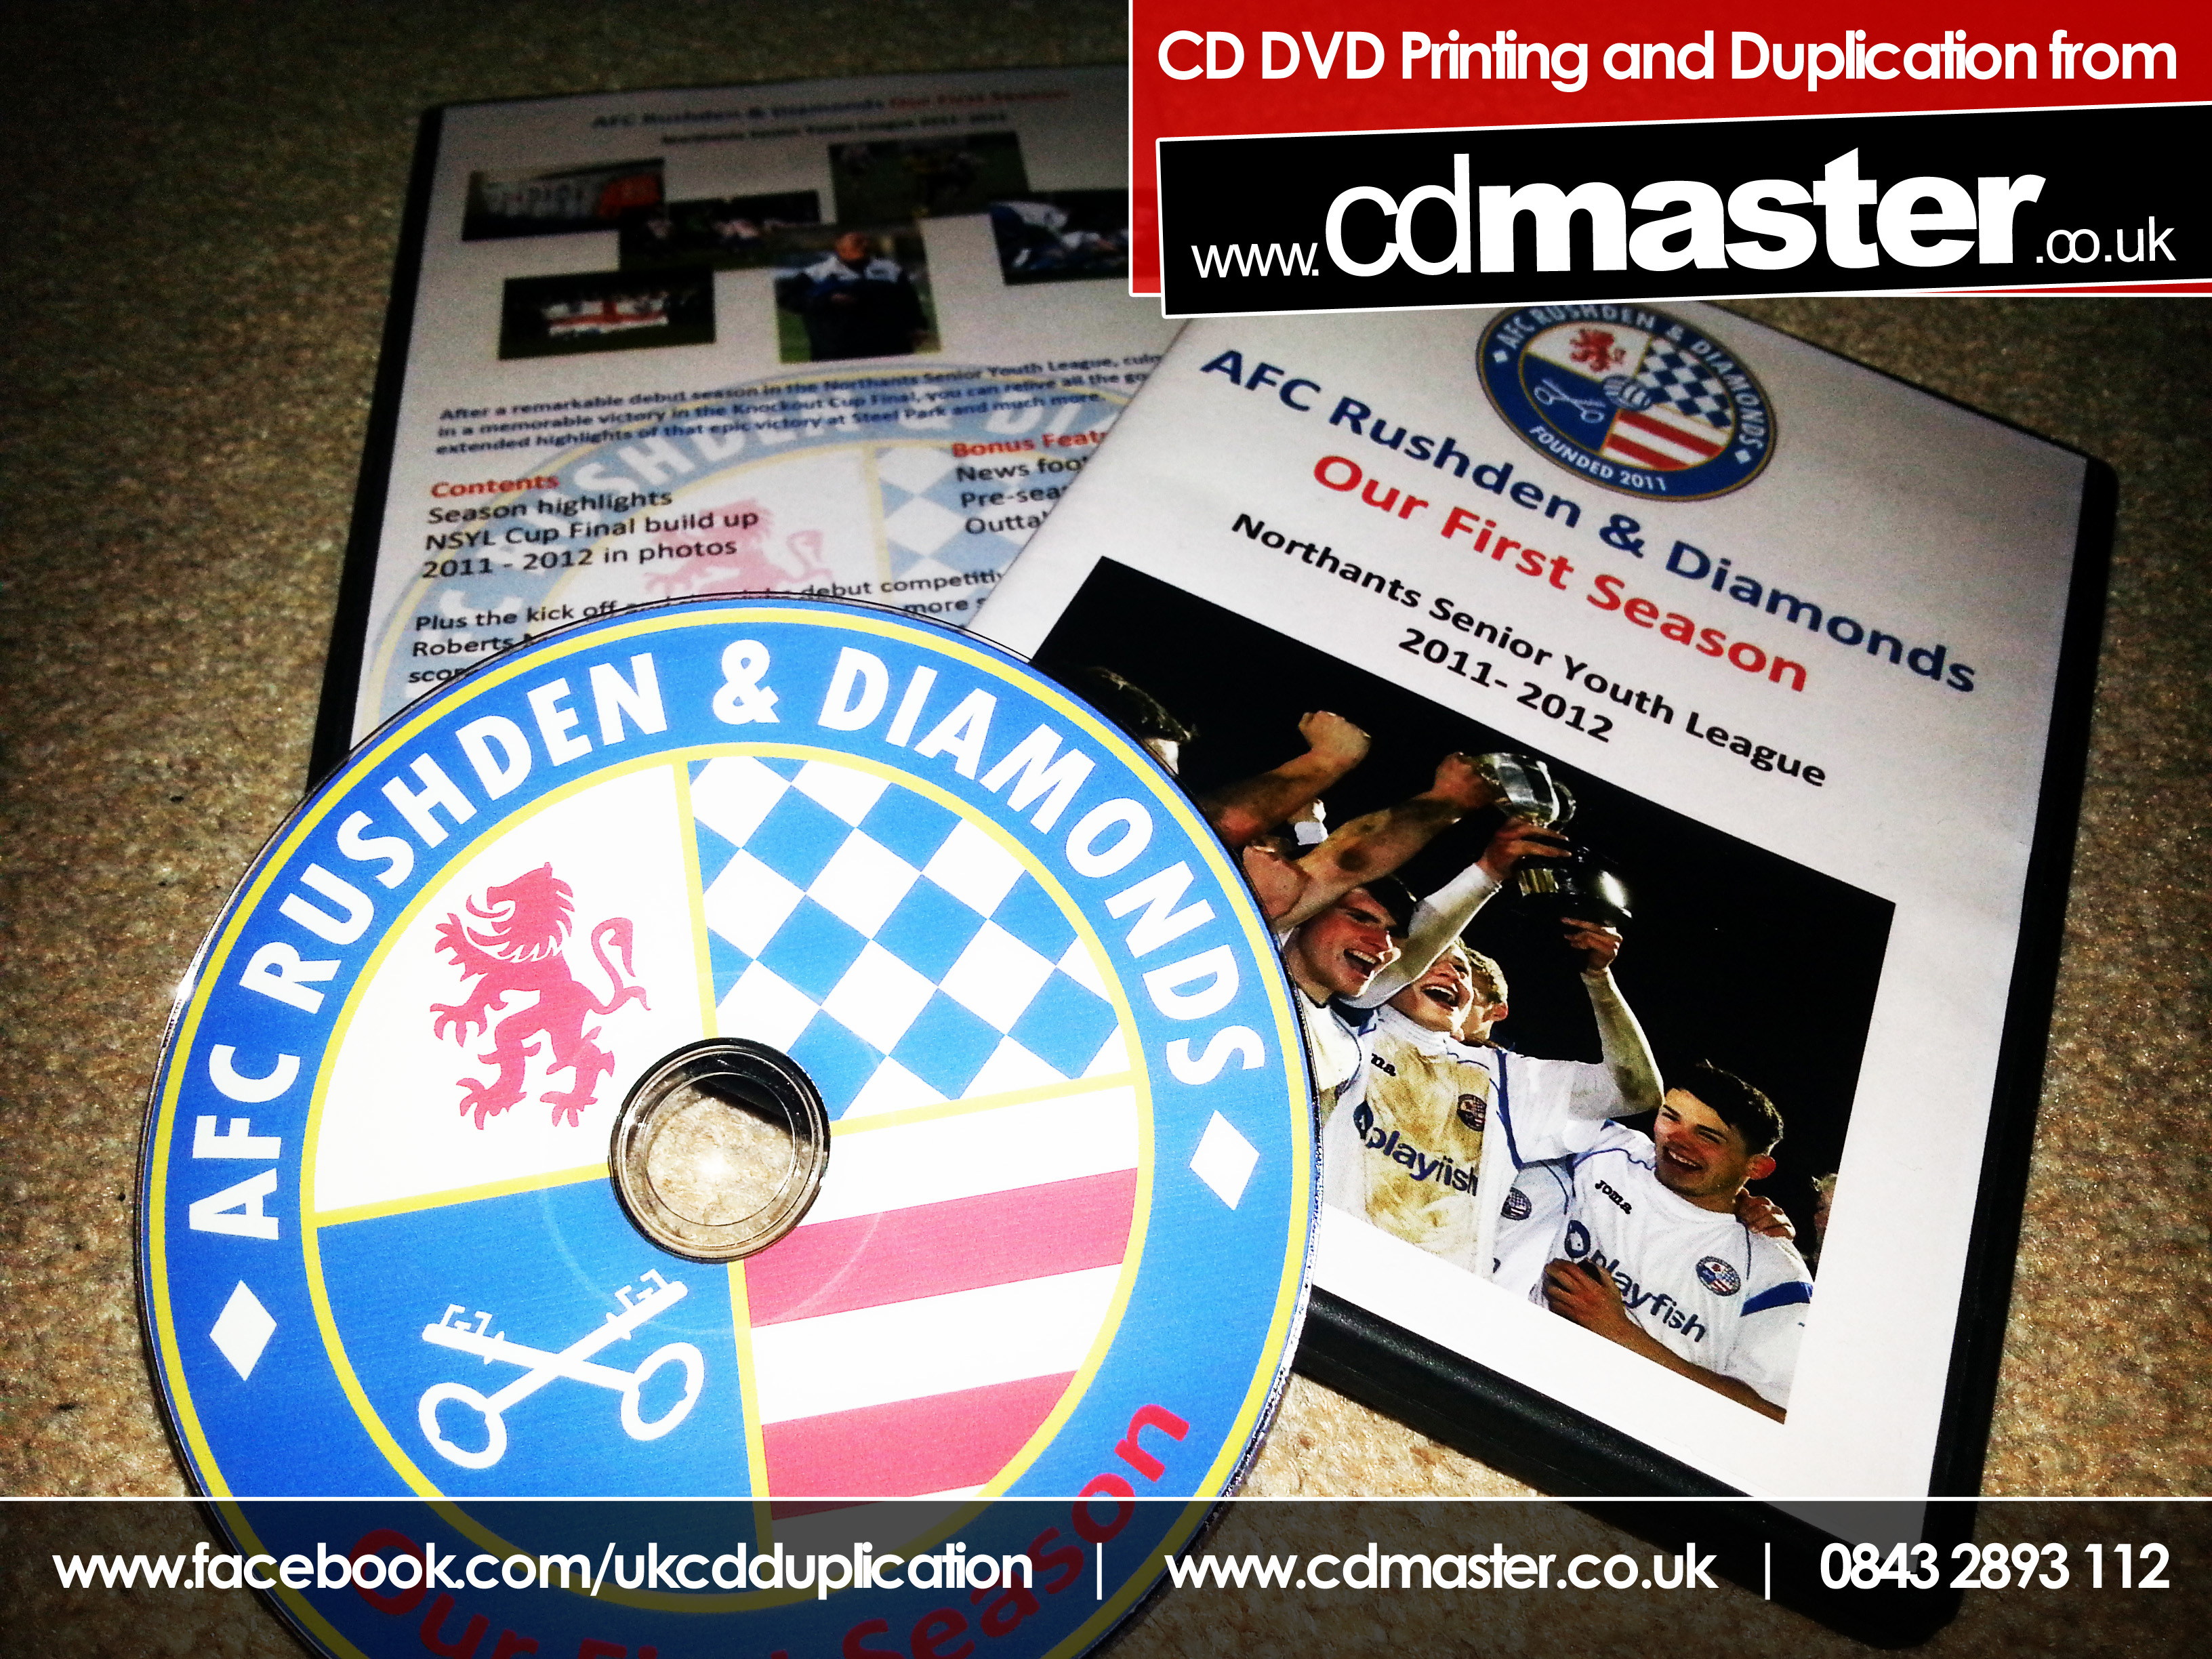 300 DVDs Printed (Standard) - More than 50% ink coverage ...